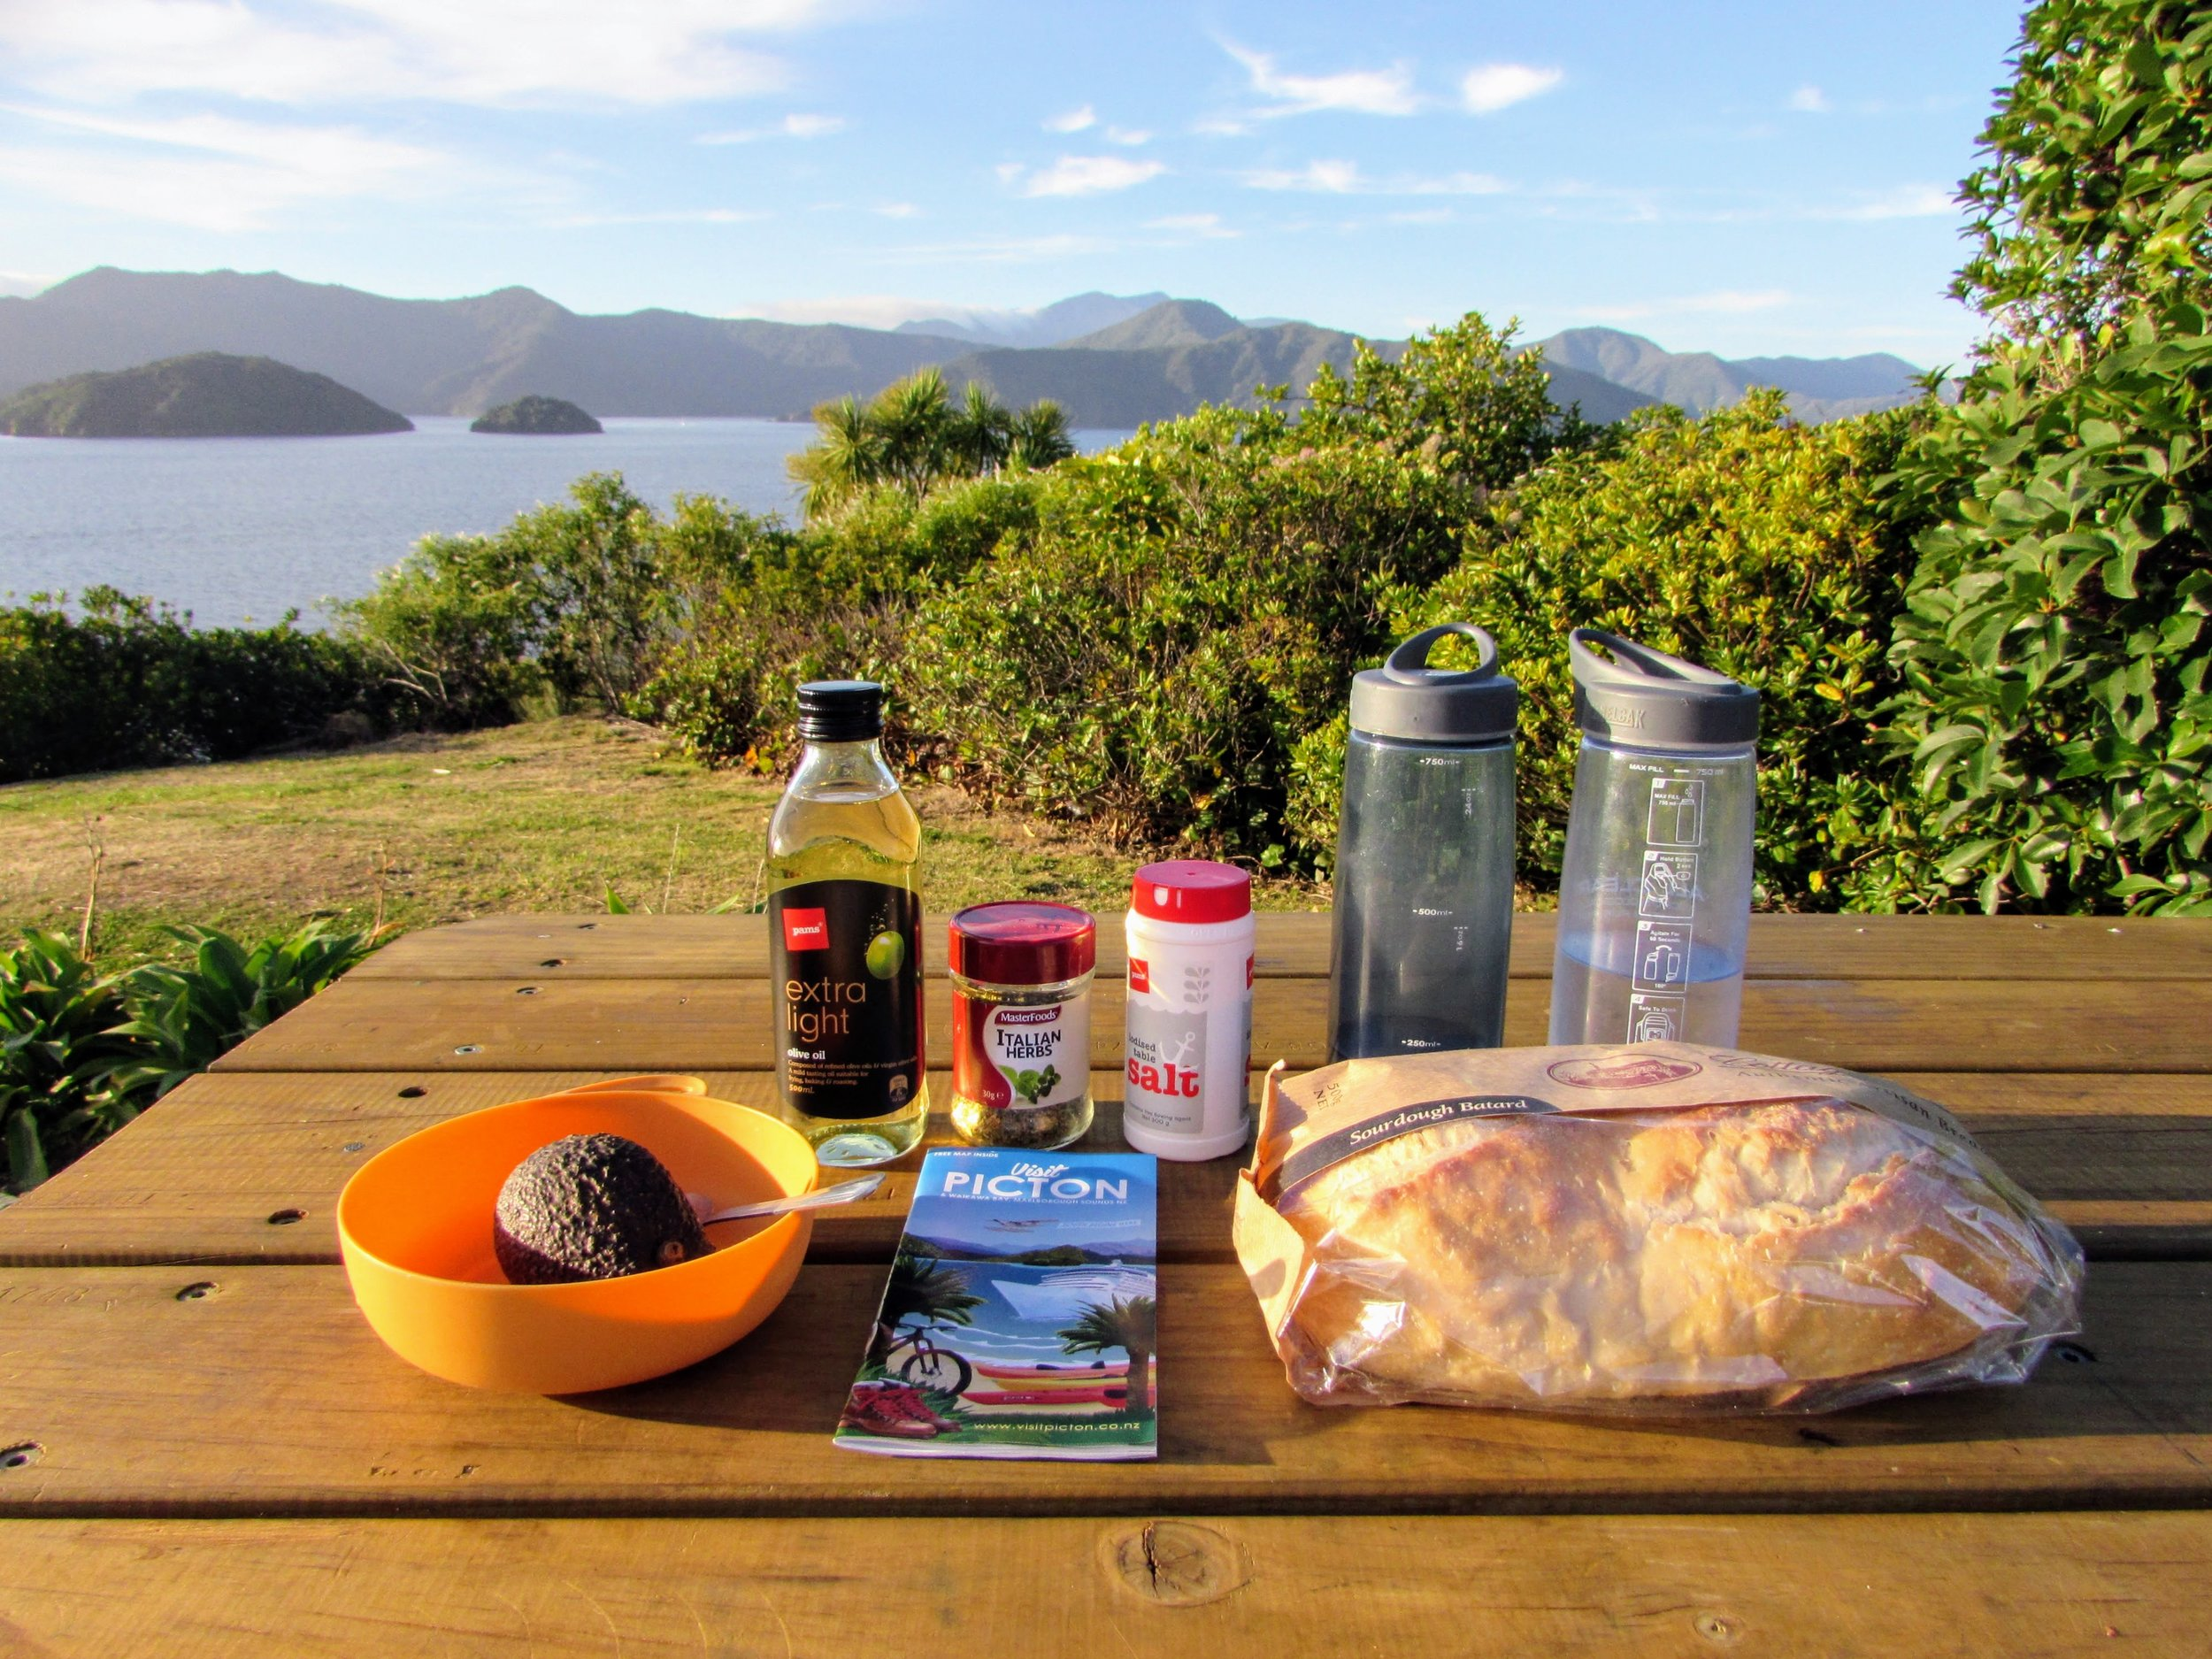 Car living dinner in Picton, NZ: bread + oil, & salted avocado. Not exactly healthy but definitely tasty.